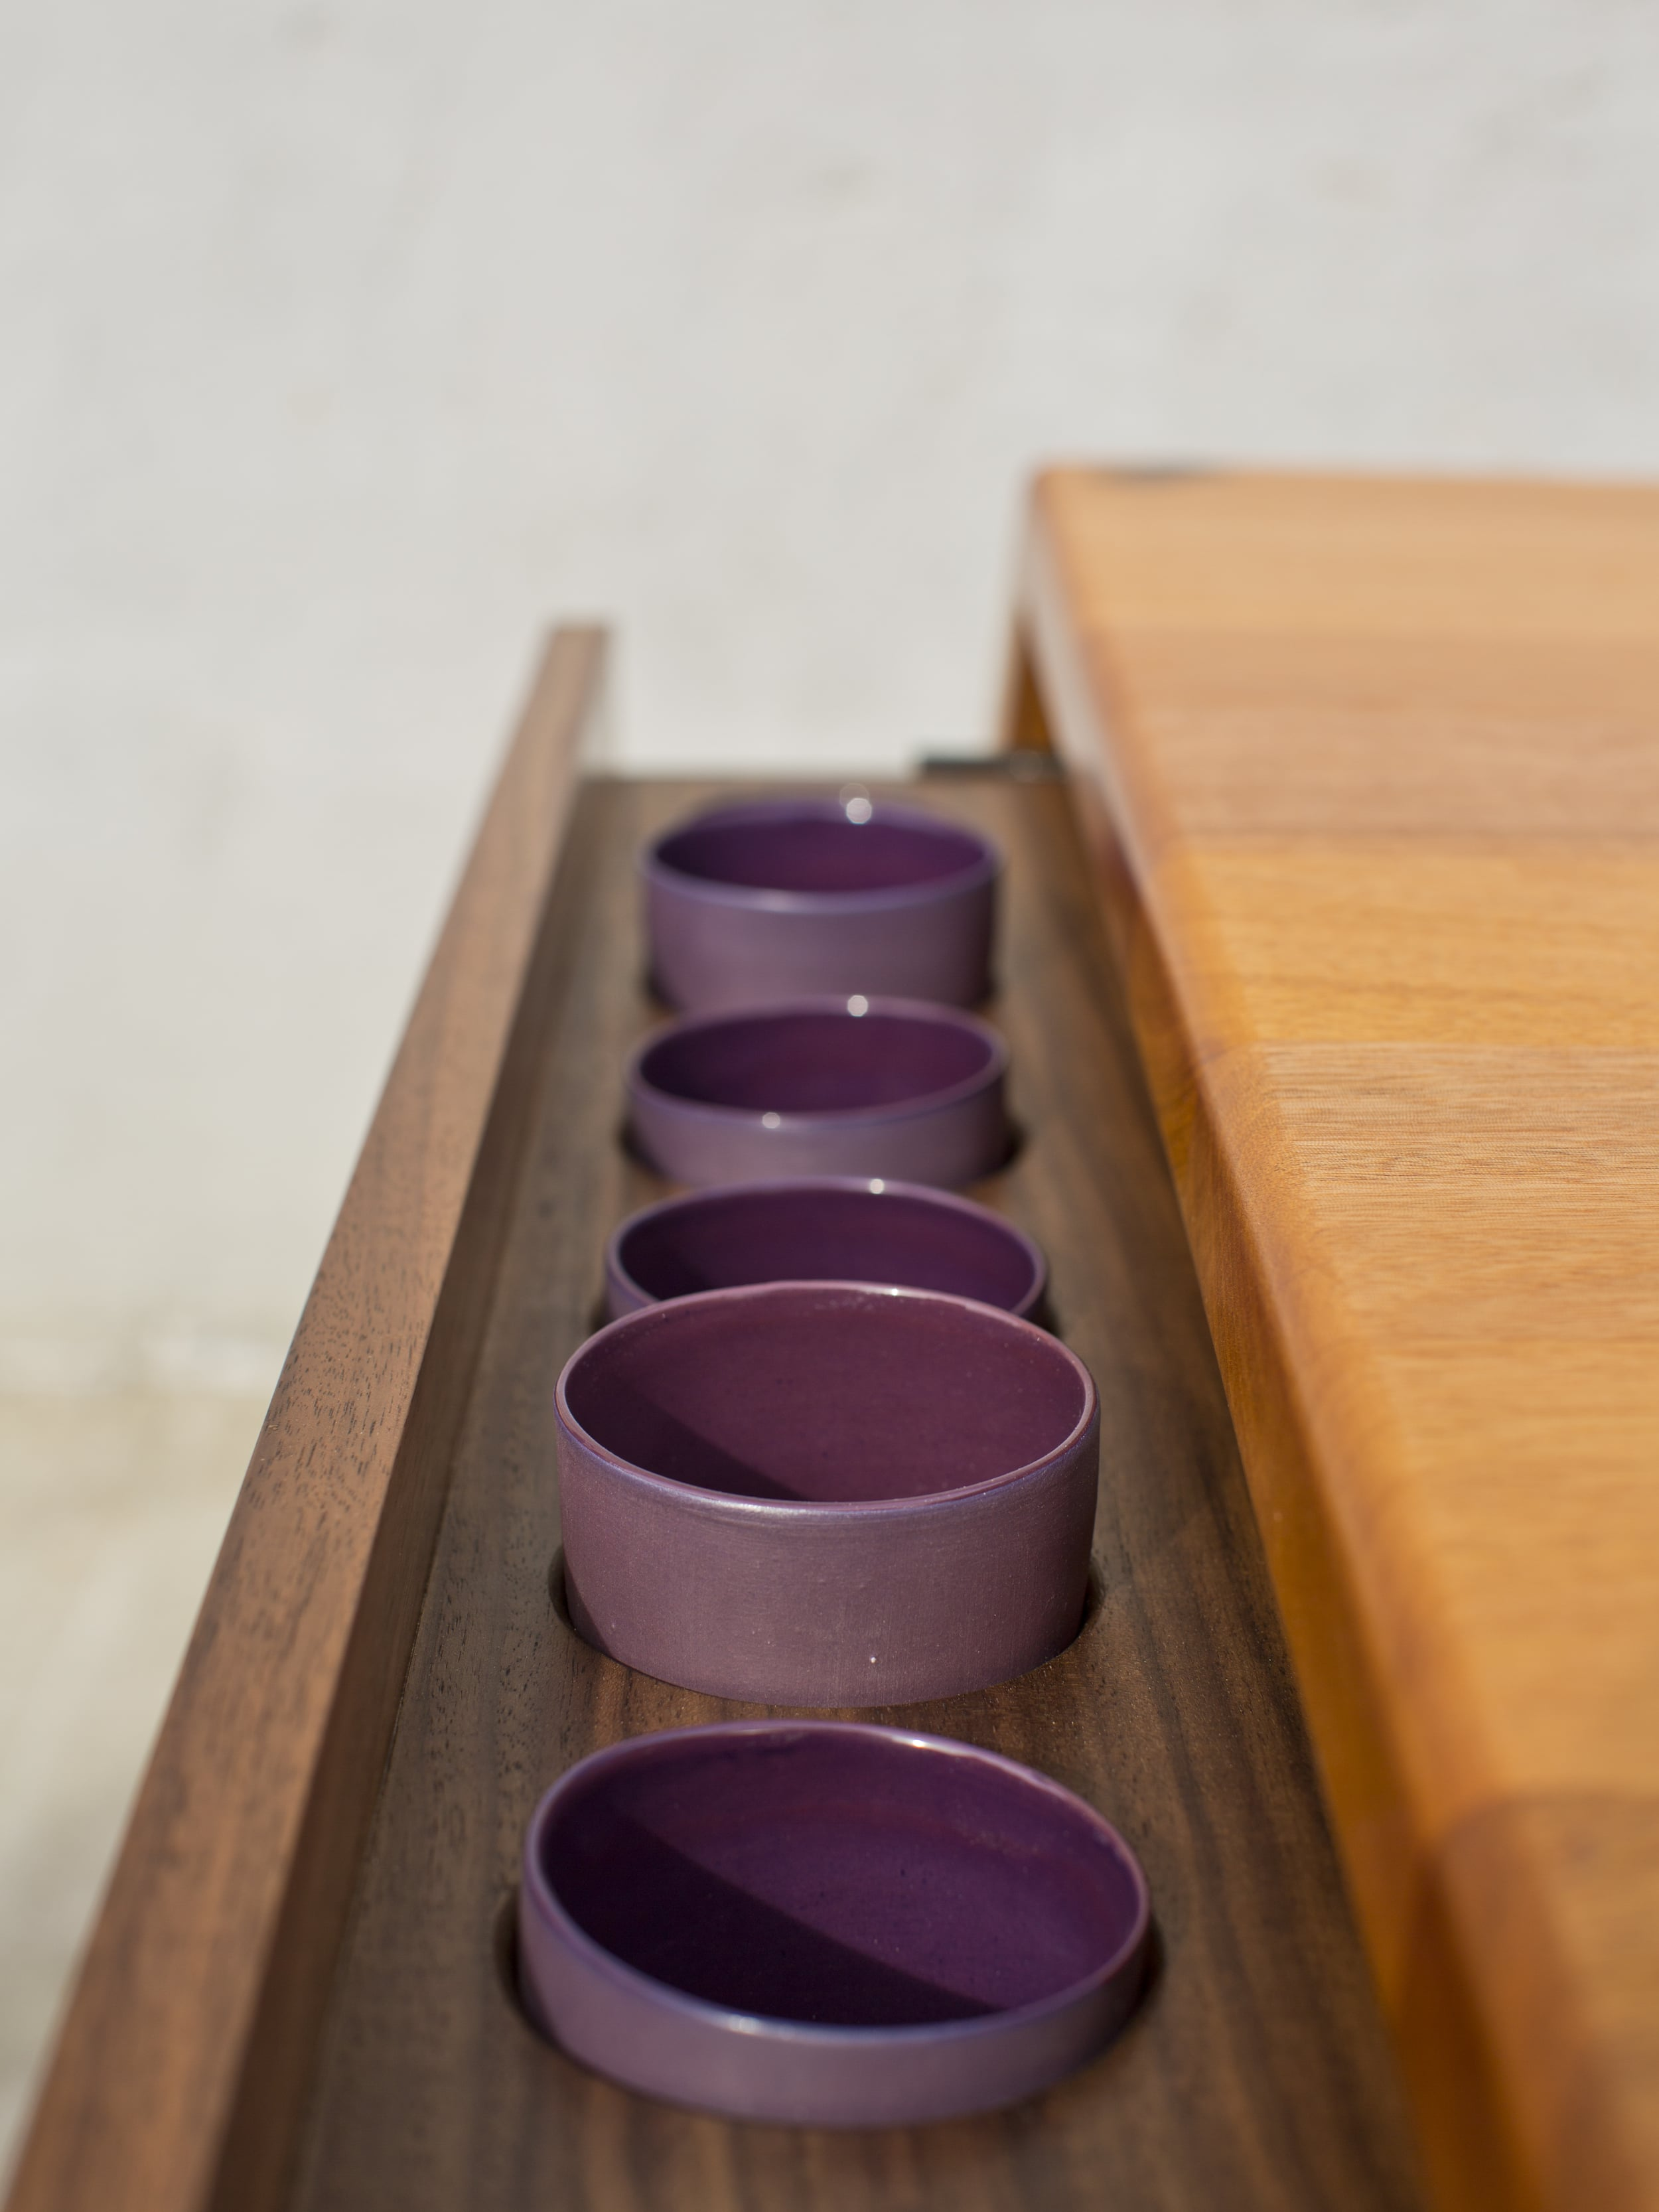 Handmade porcelain cups nest into a side drawer.